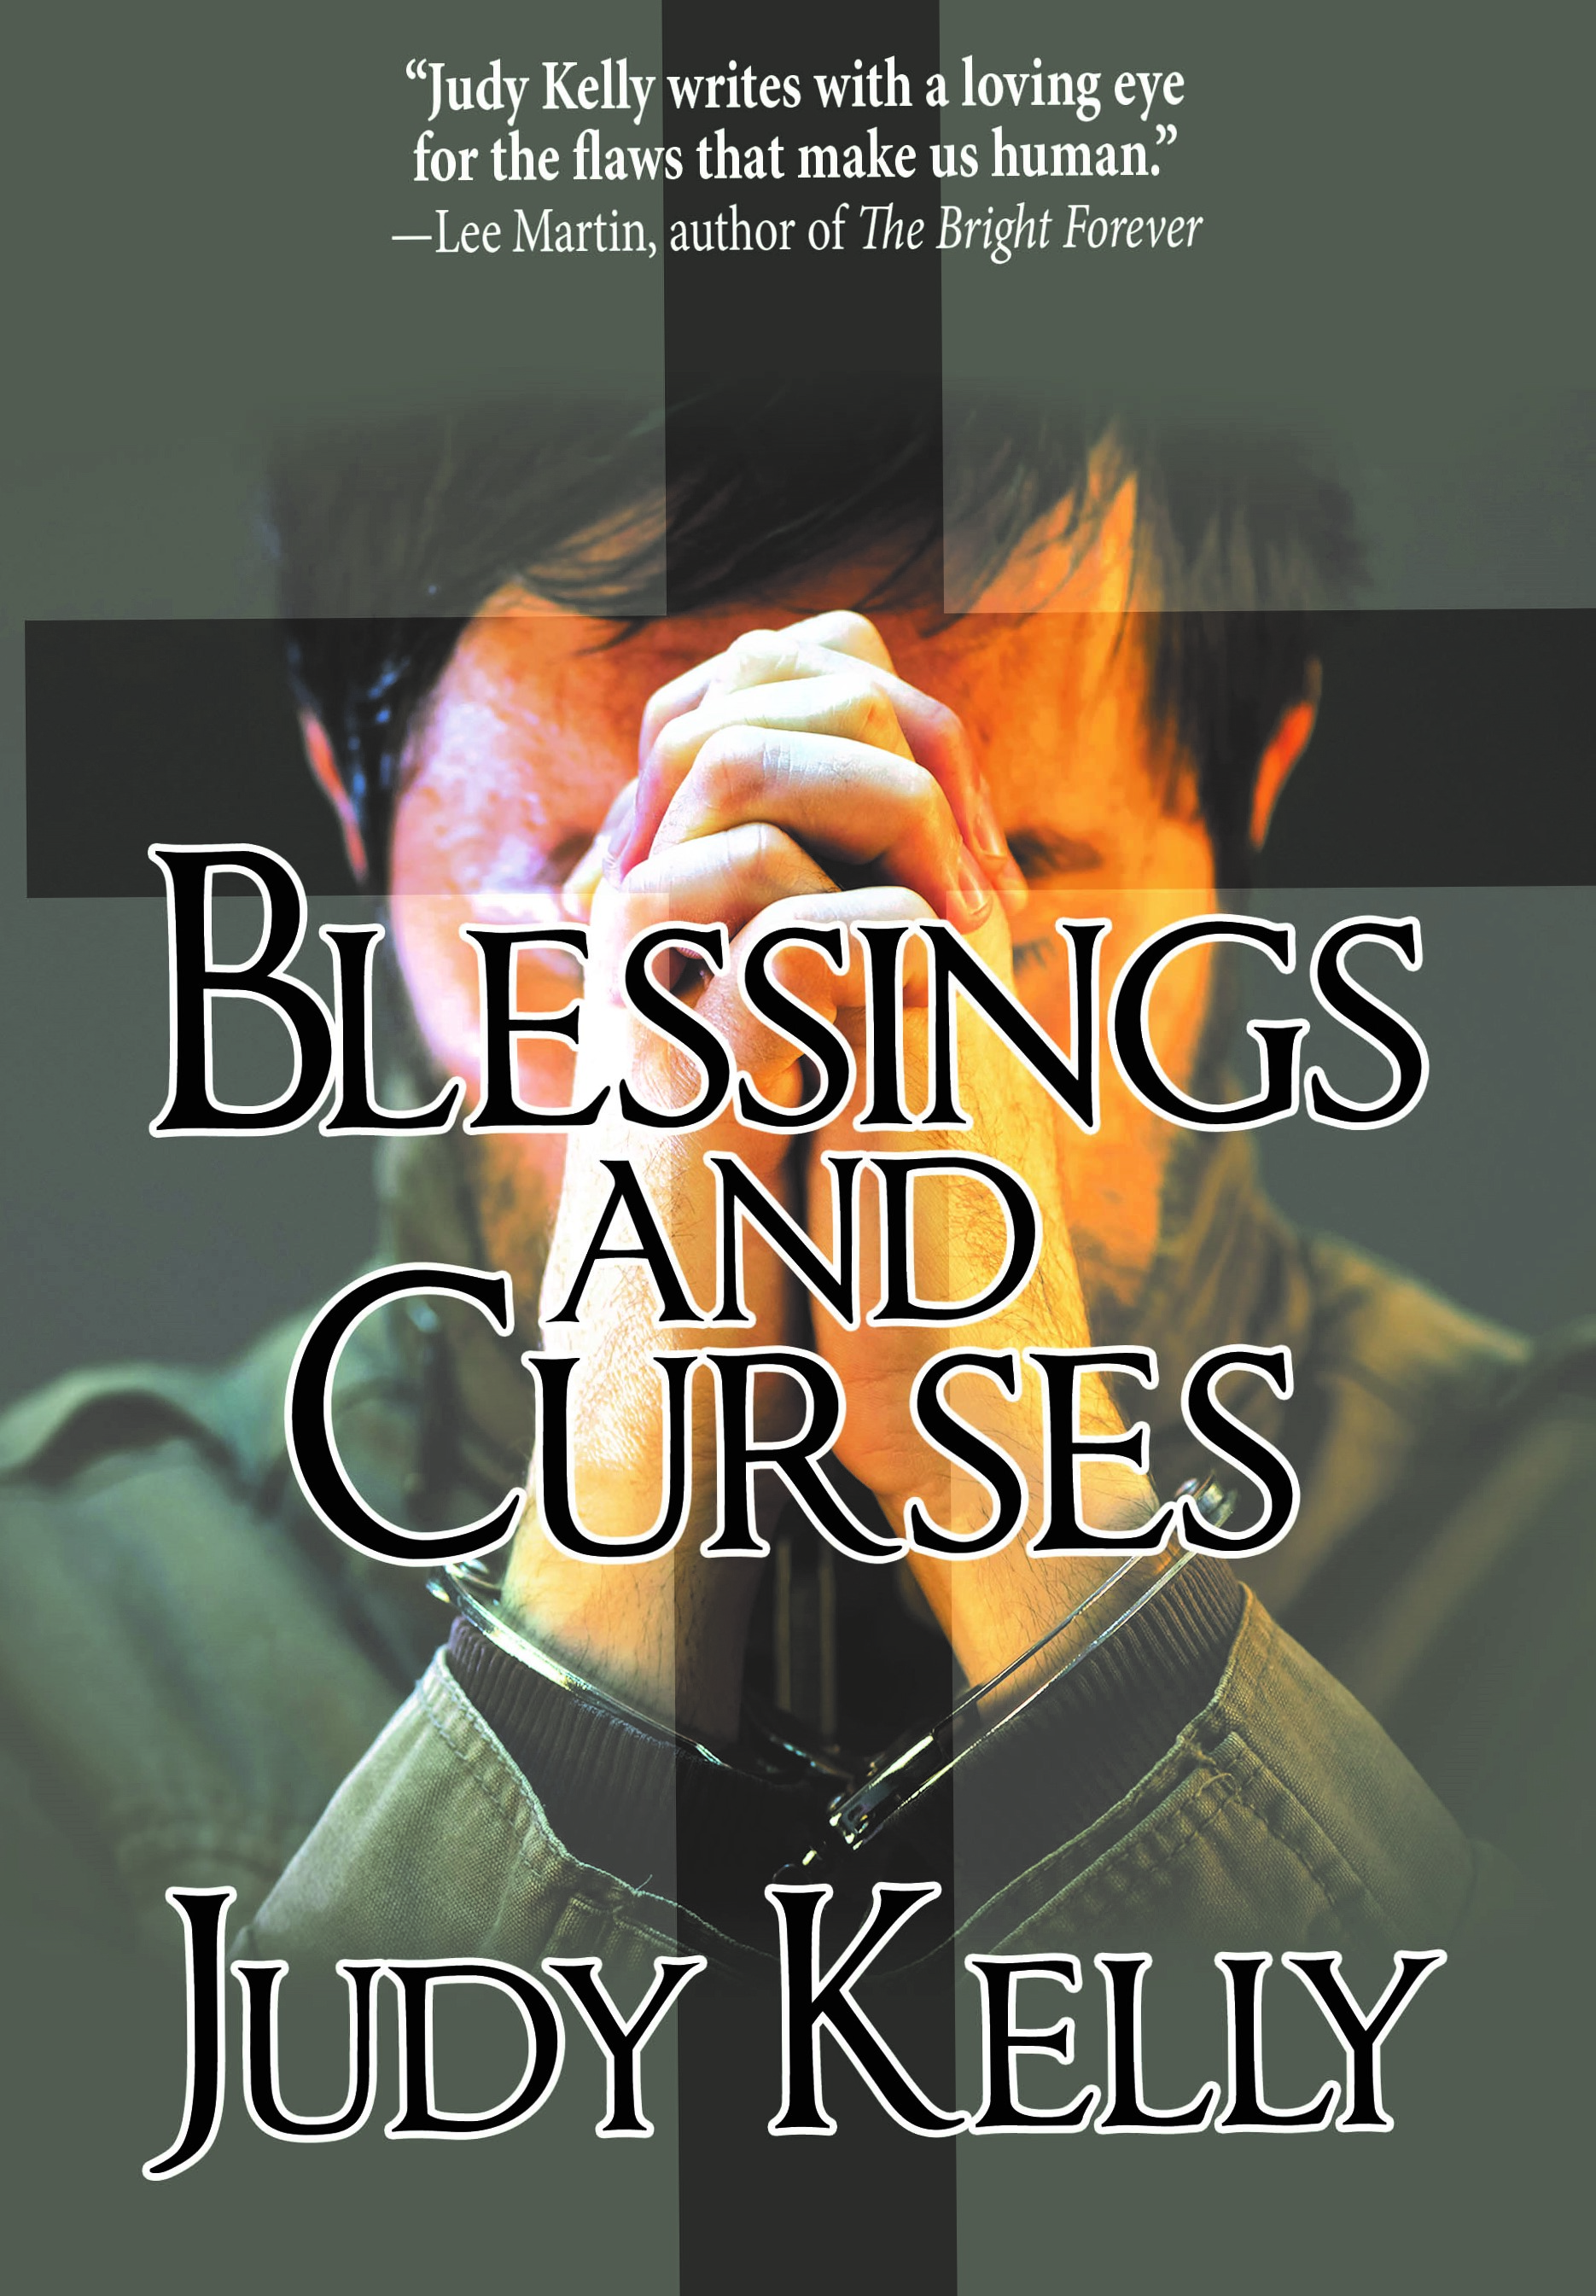 Blessings and Curses full cover (18) - Copy